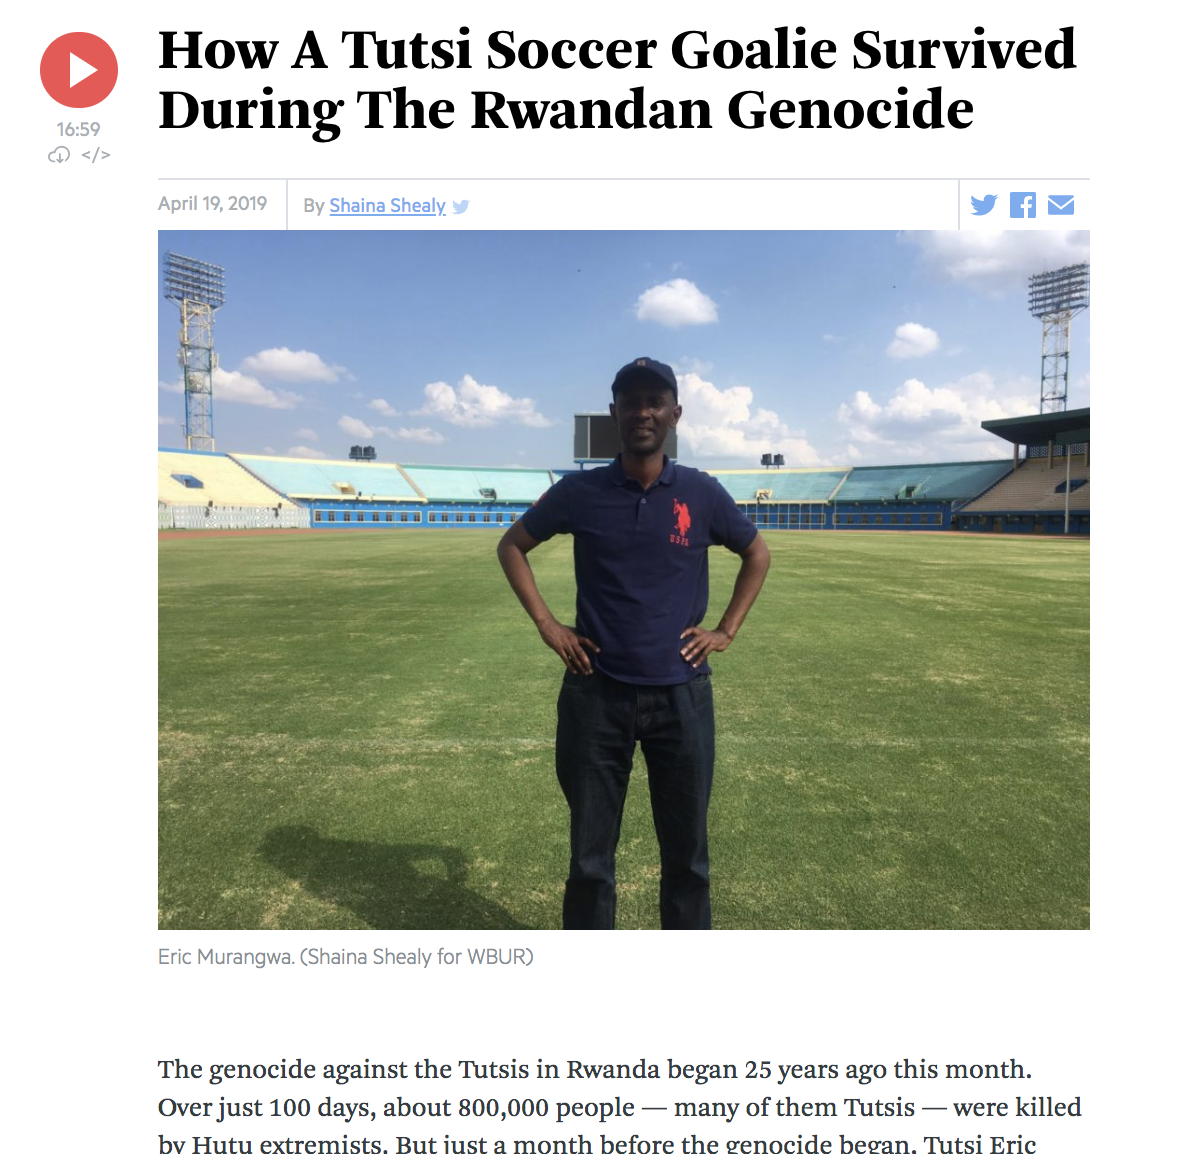 How a Tutsi soccer goalie survived during the Rwandan genocide